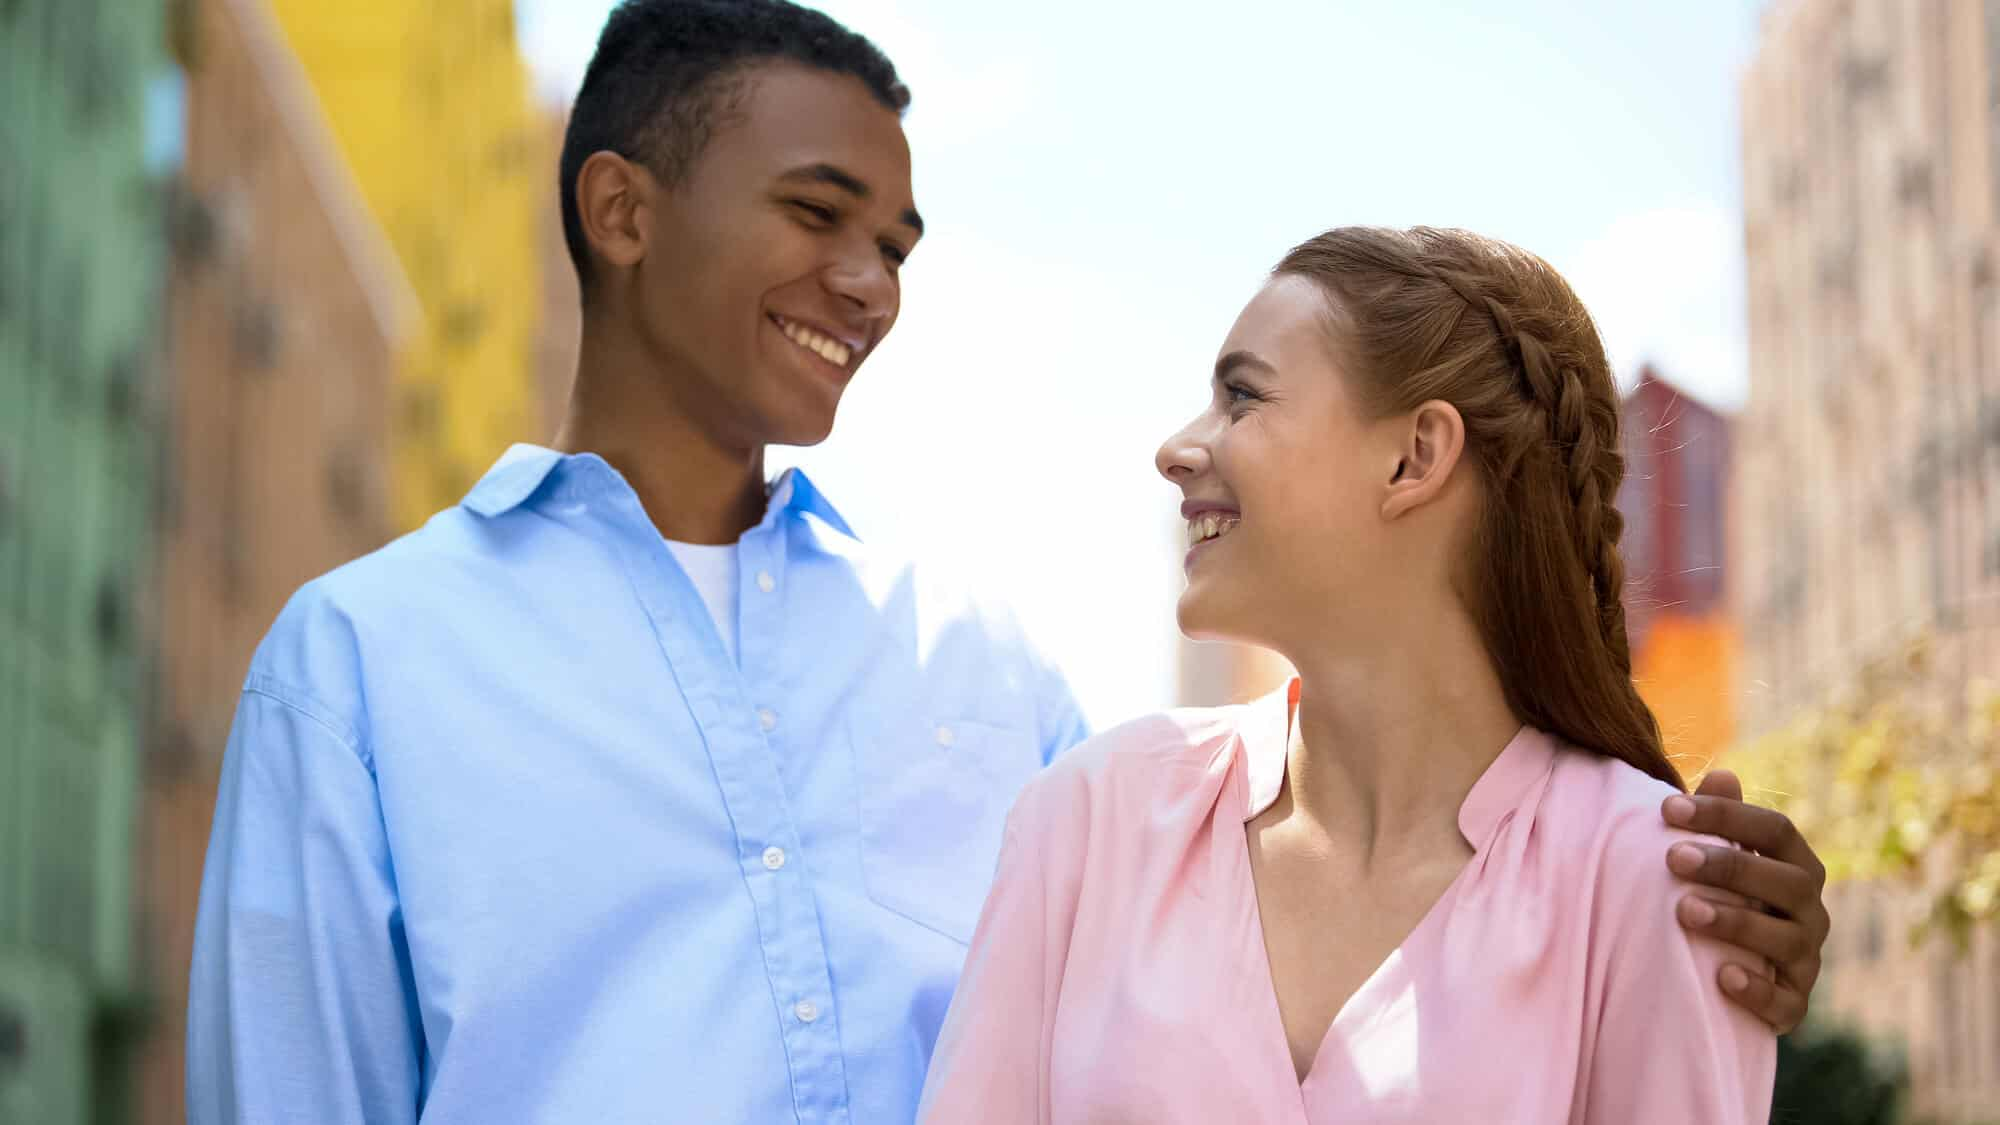 A boy and girl looking at each other and smiling